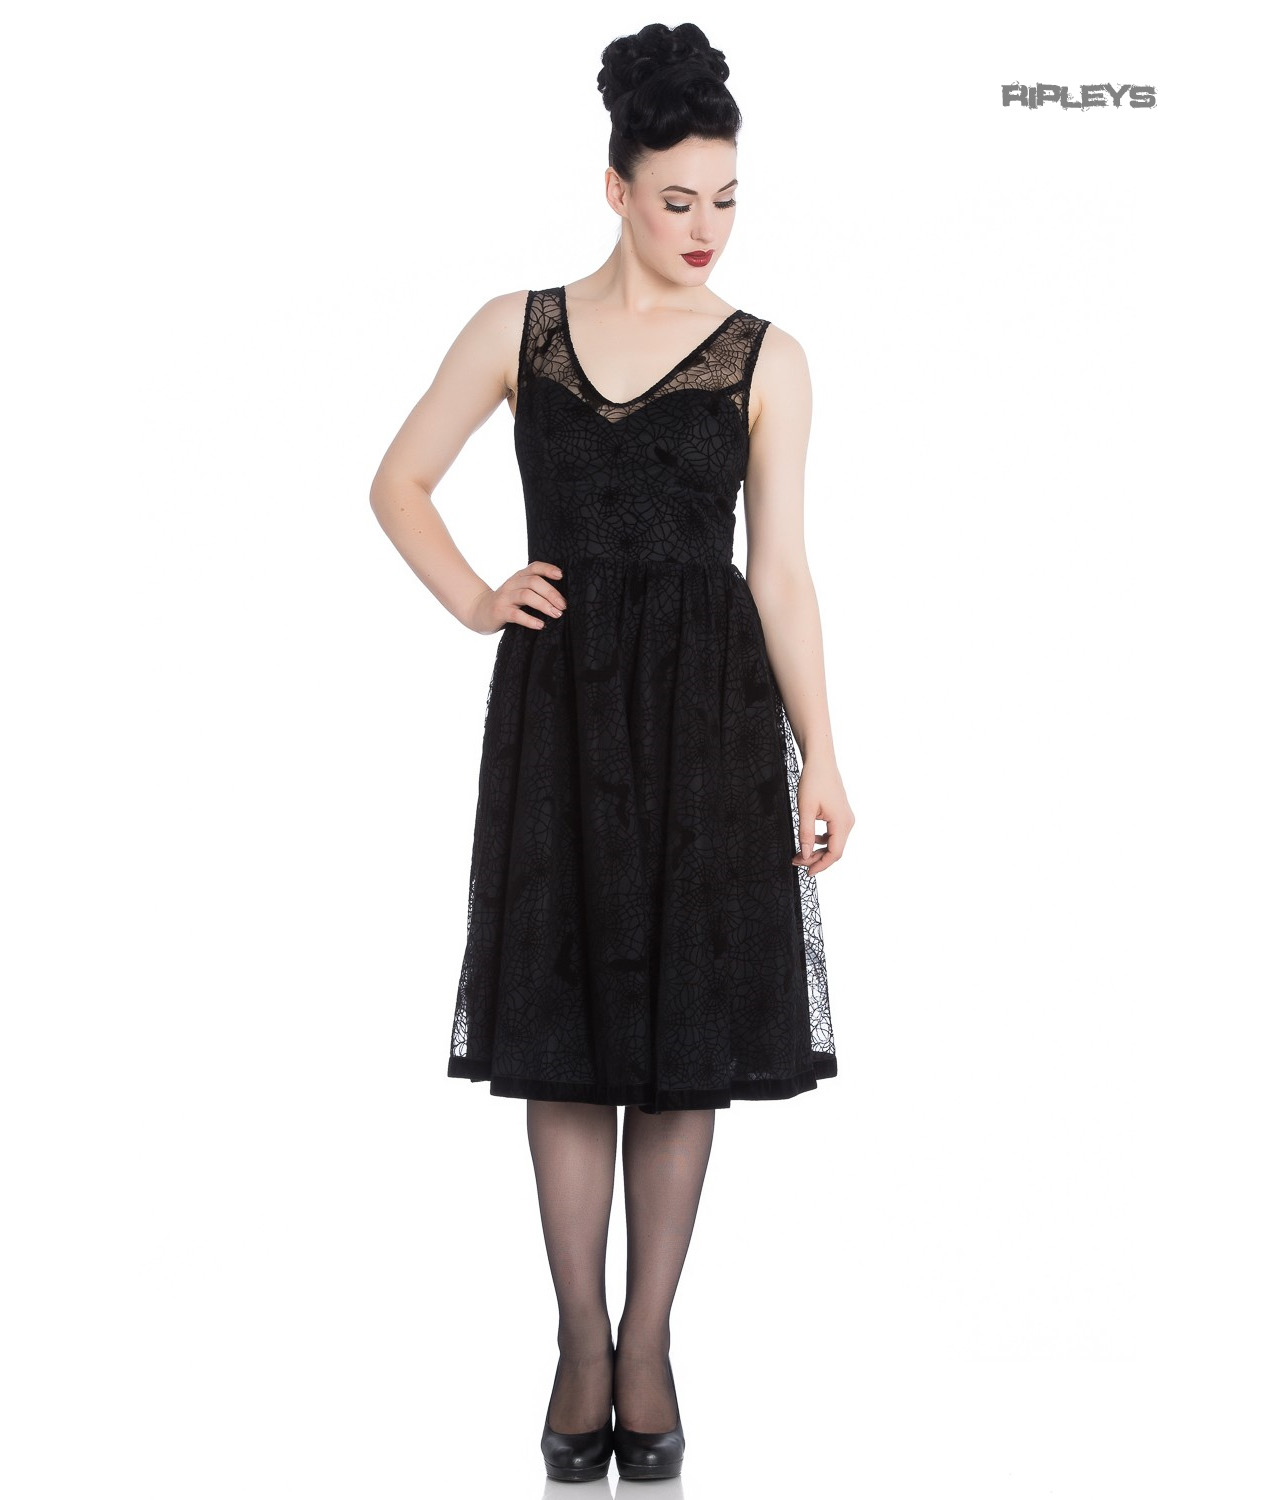 Hell-Bunny-50s-Black-Gothic-Net-Dress-Witchy-AMARANDE-Spiders-Bats-All-Sizes thumbnail 10